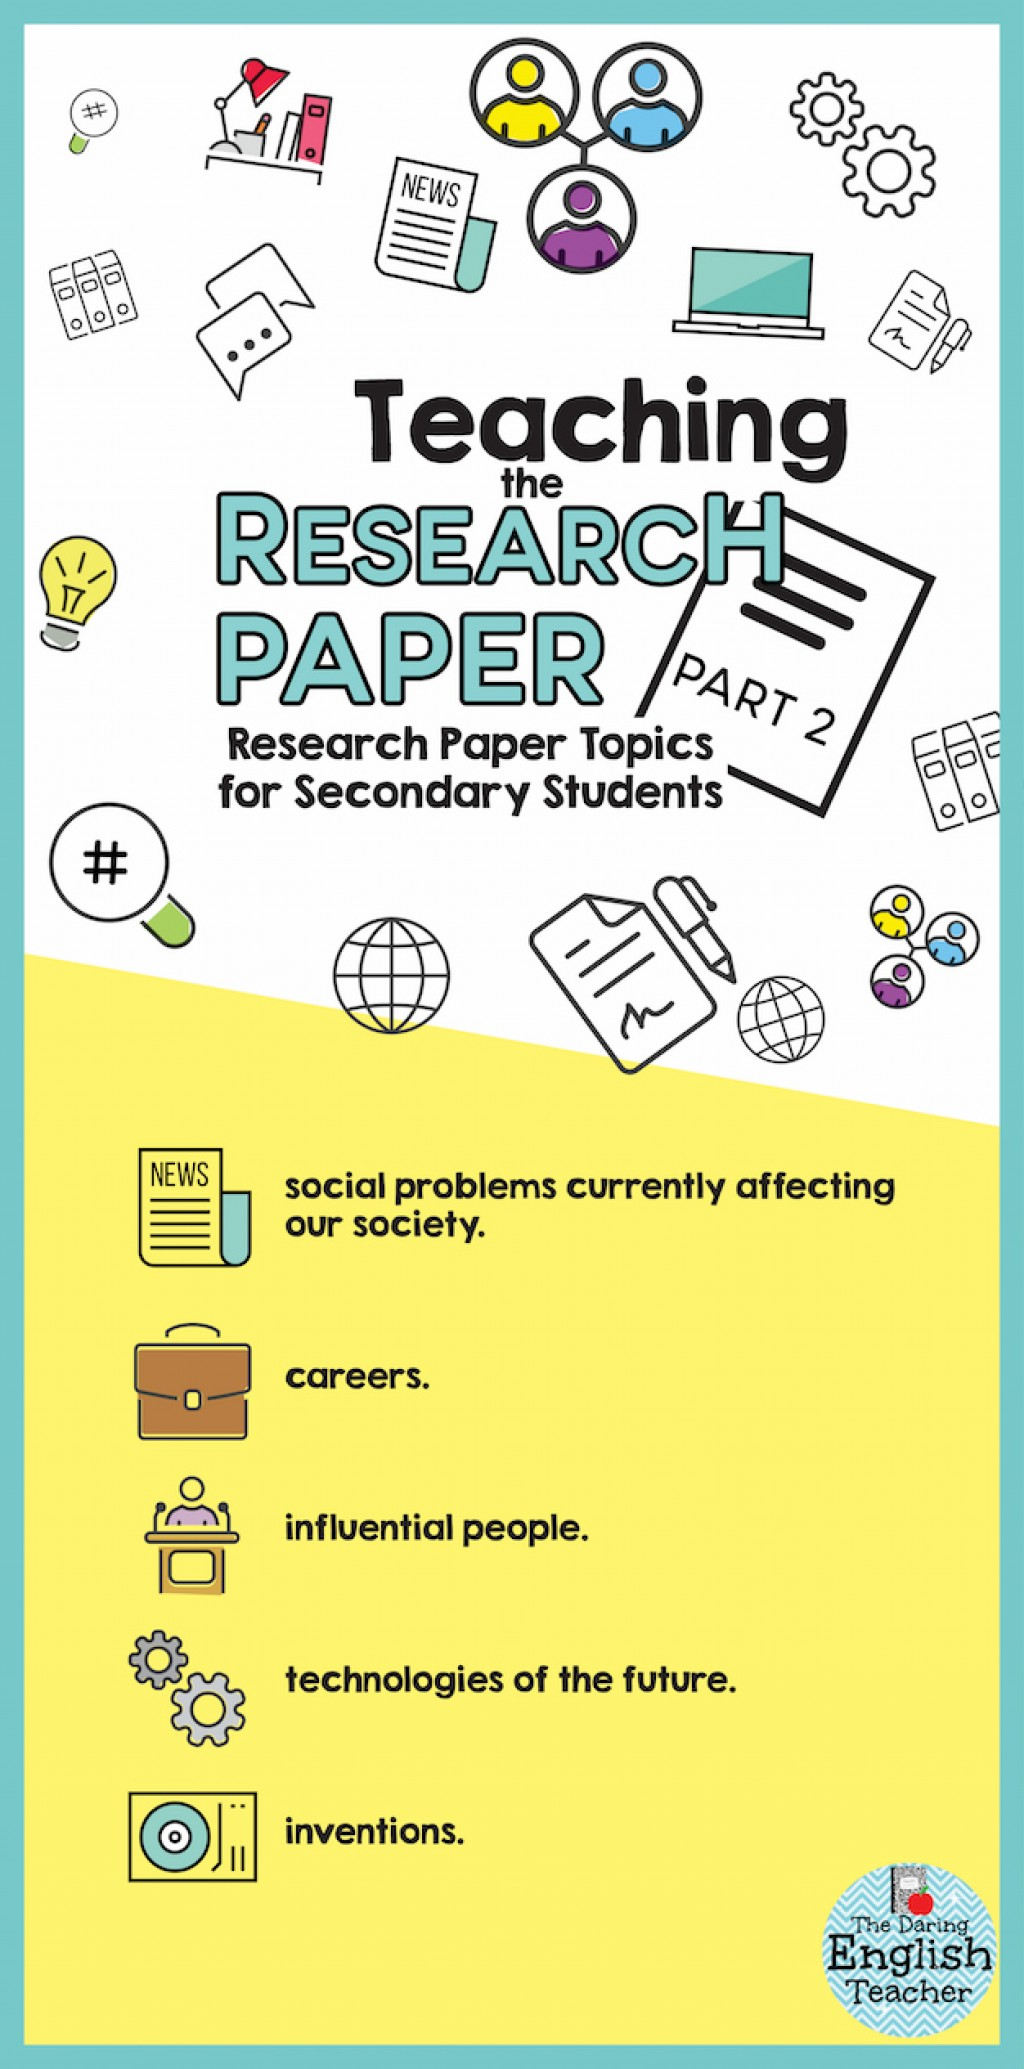 022 Research Paper Interesting Topics Incredible Funny Large